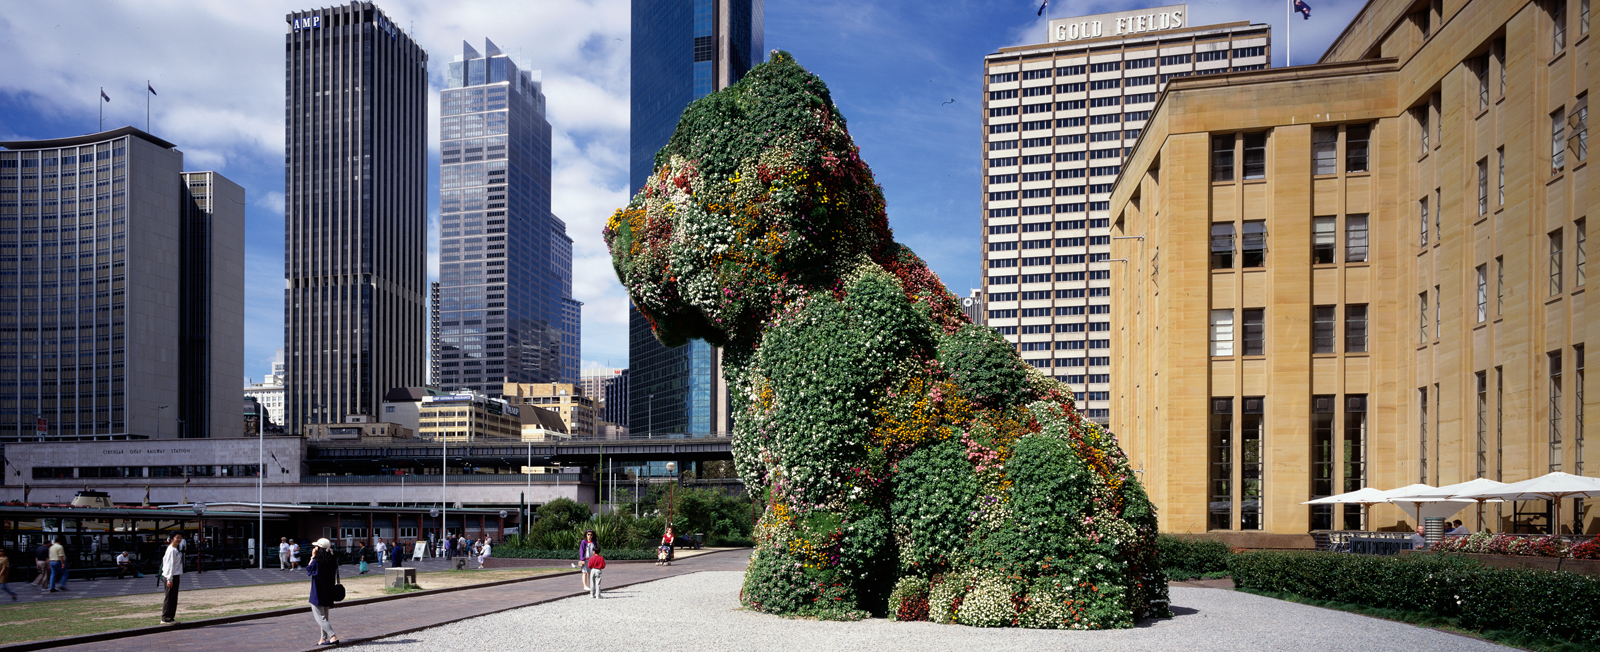 Create NSW & ABC announce Kaldor Public Art Projects as